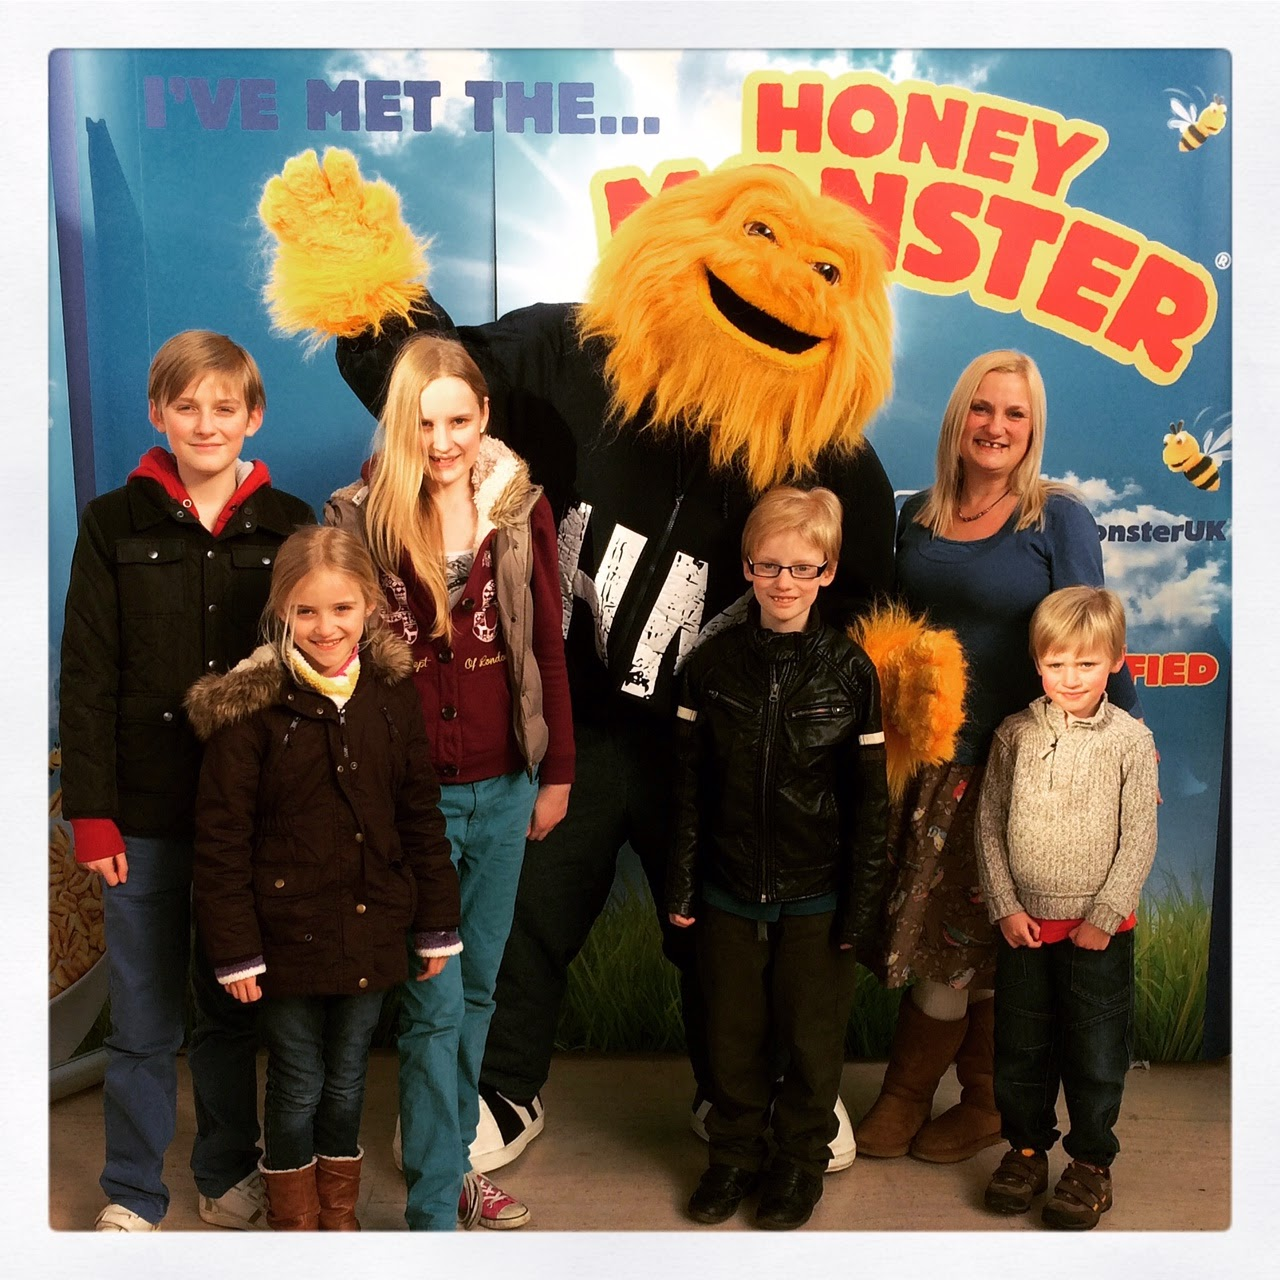 Meeting the Honey Monster at the centre;MK